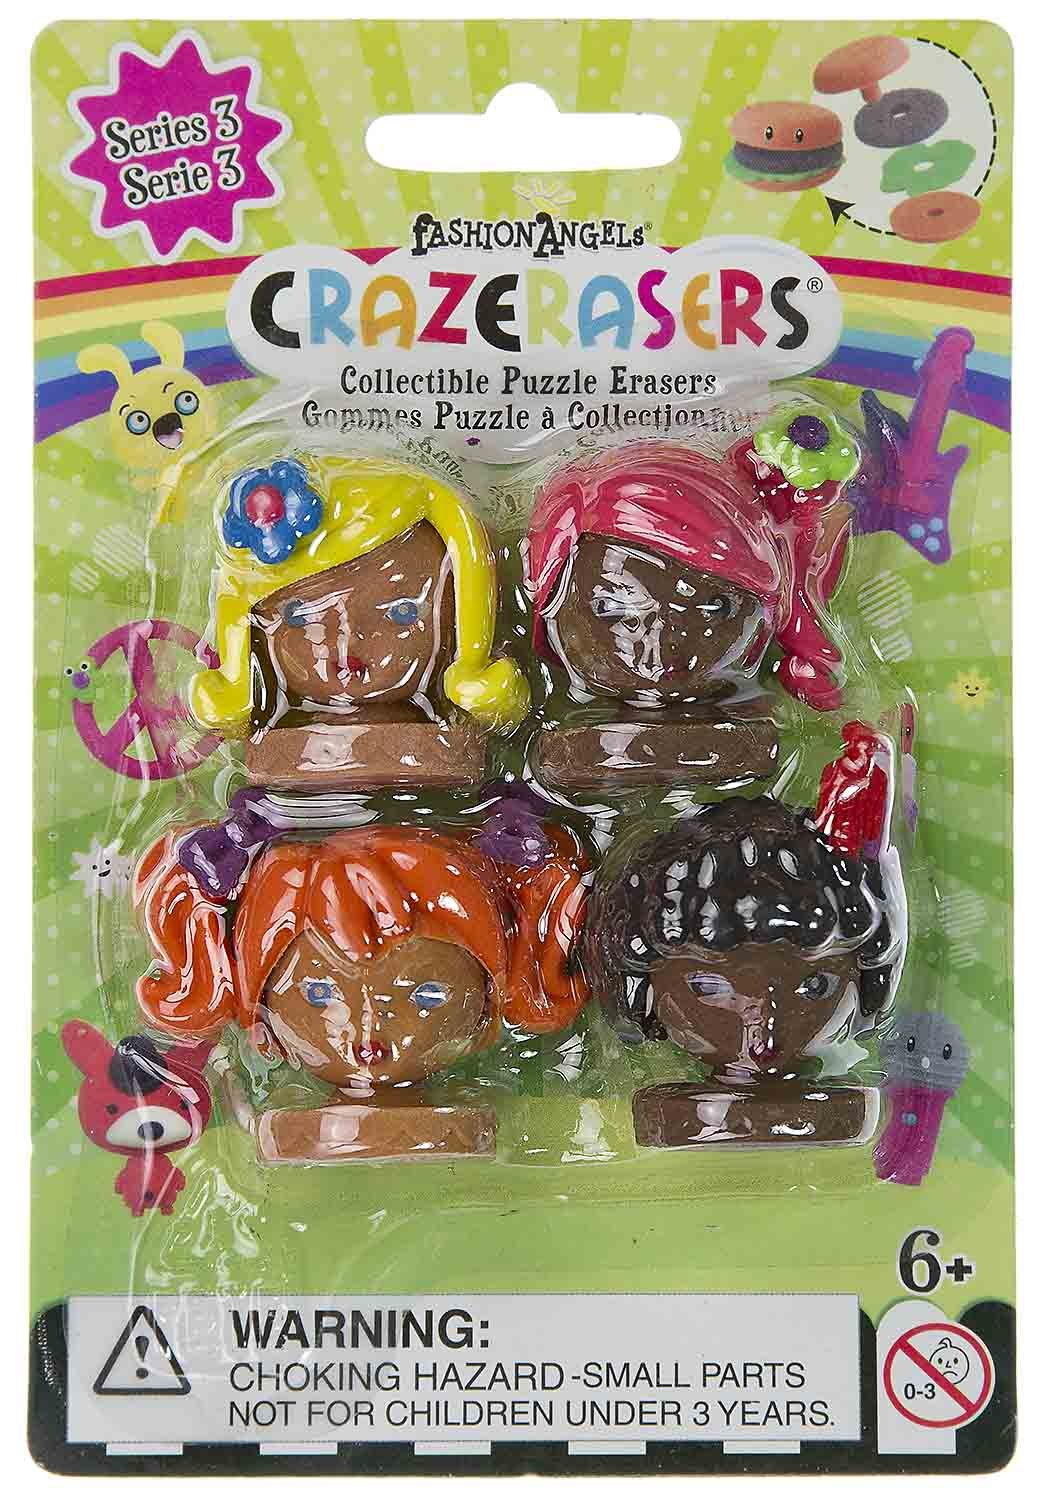 Series 3 CrazErasers Collectible Erasers ~ The Fashion Angels